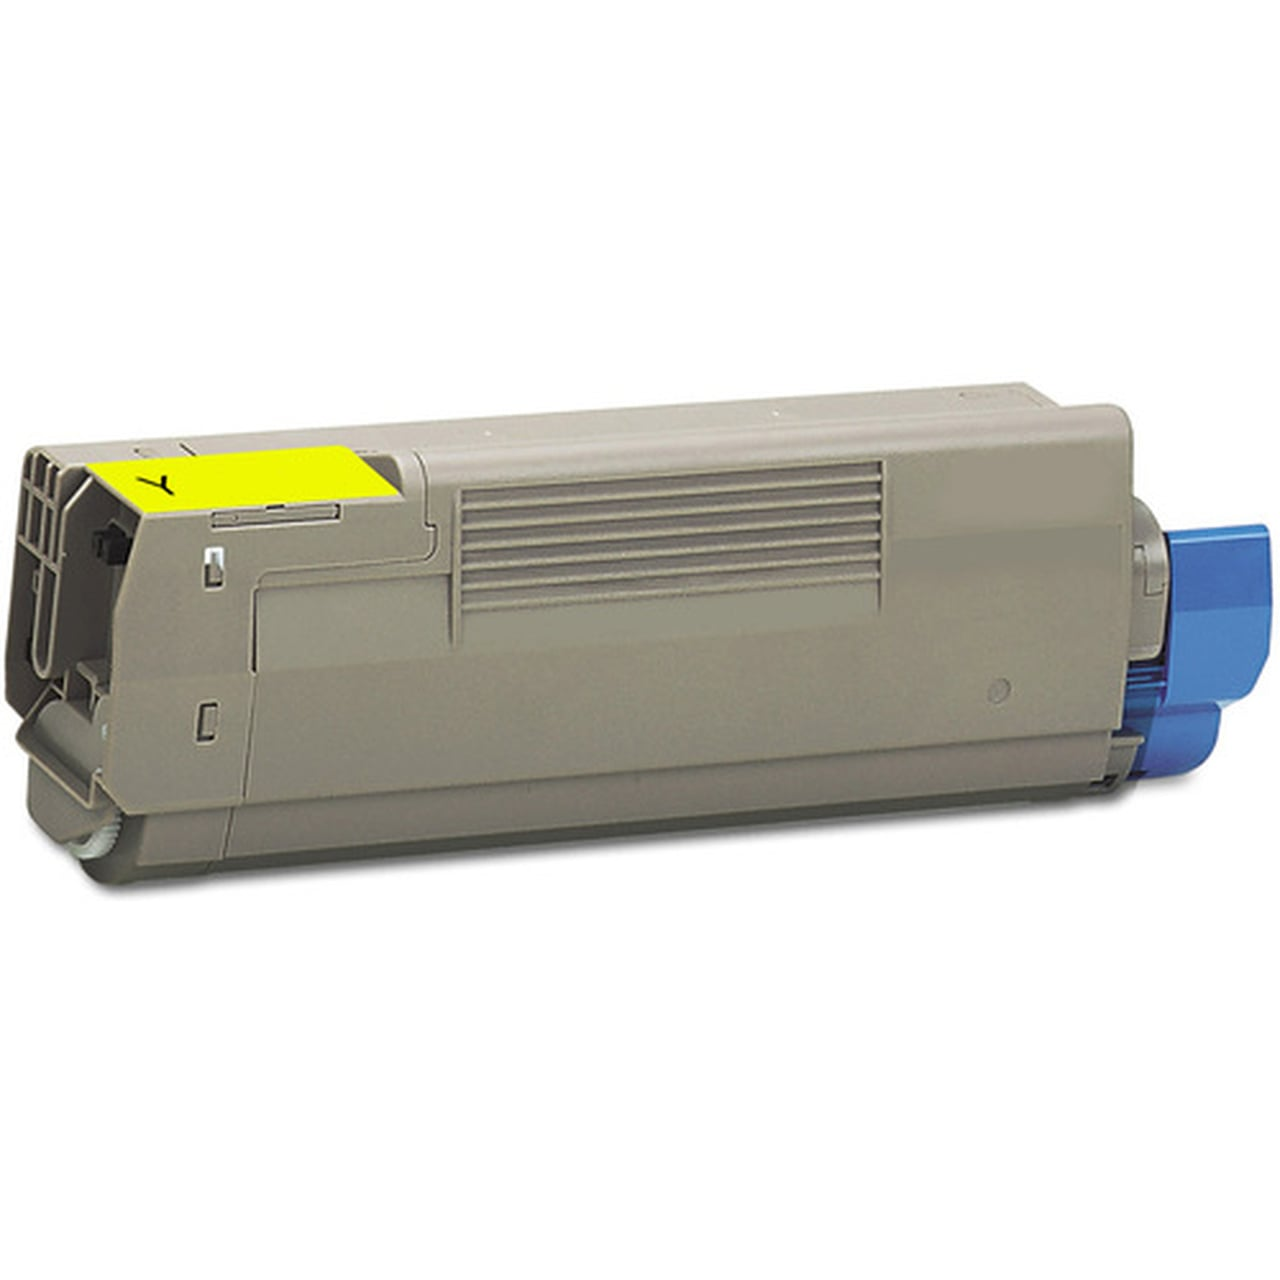 44059109 Toner Cartridge - Okidata Remanufactured (Yellow)